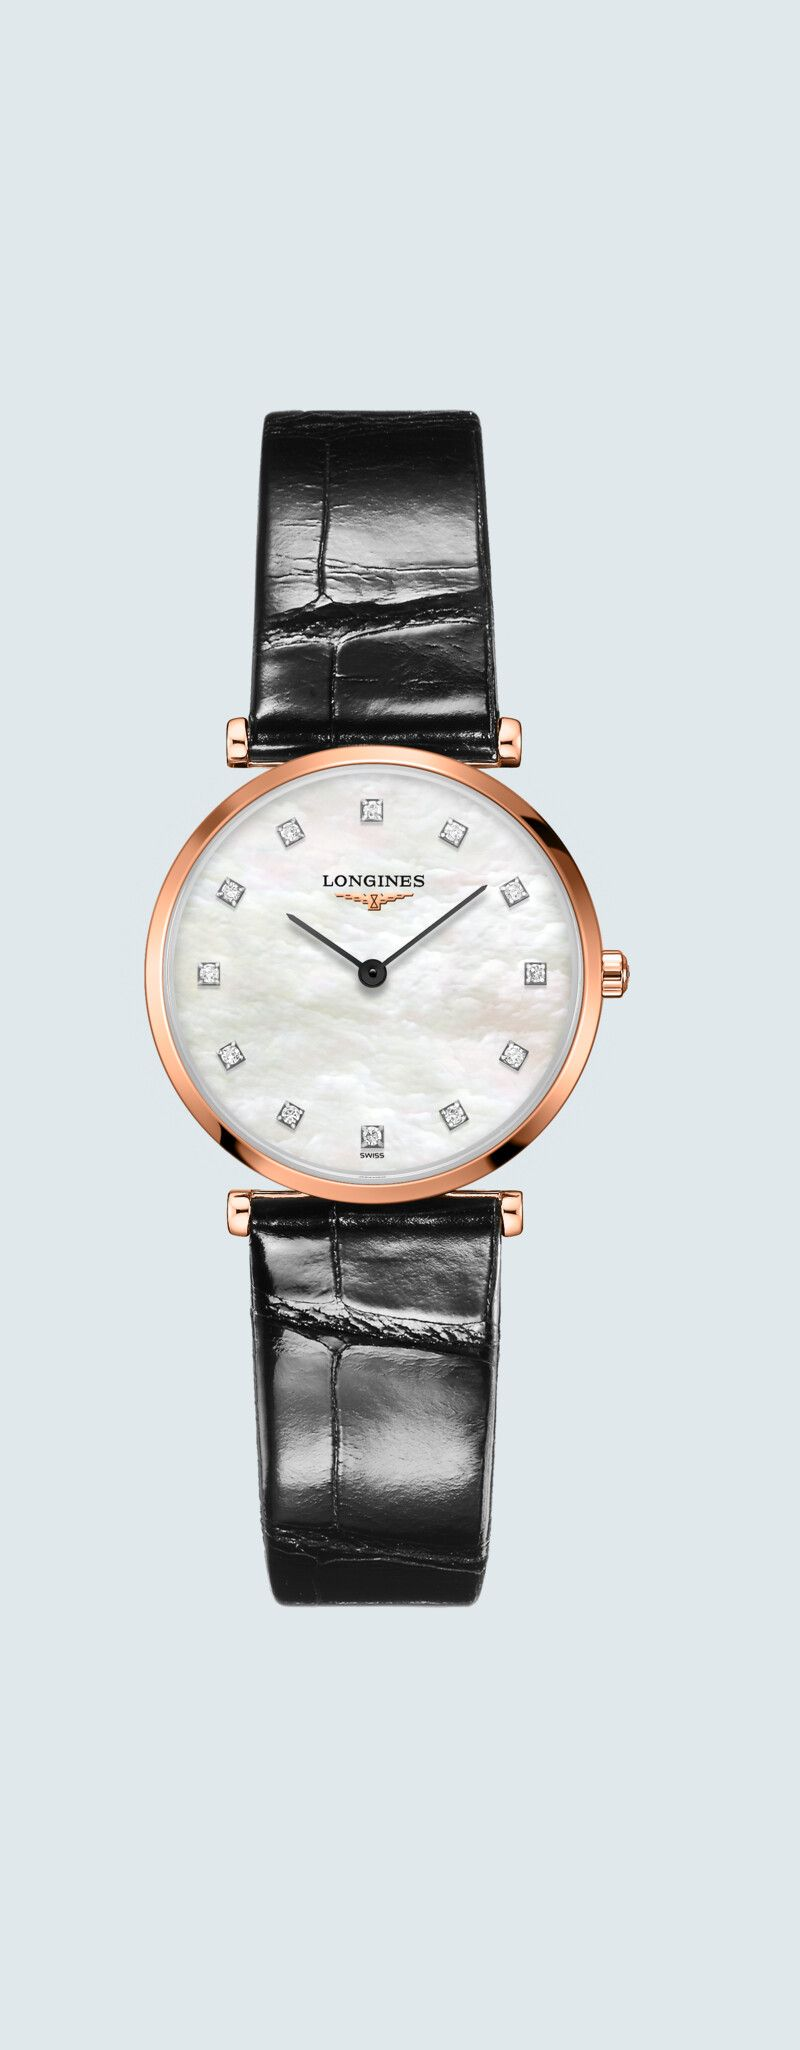 29.00 mm PVD rose case with Nacre blanche dial and Bracelet Alligator Noir strap - case zoom view